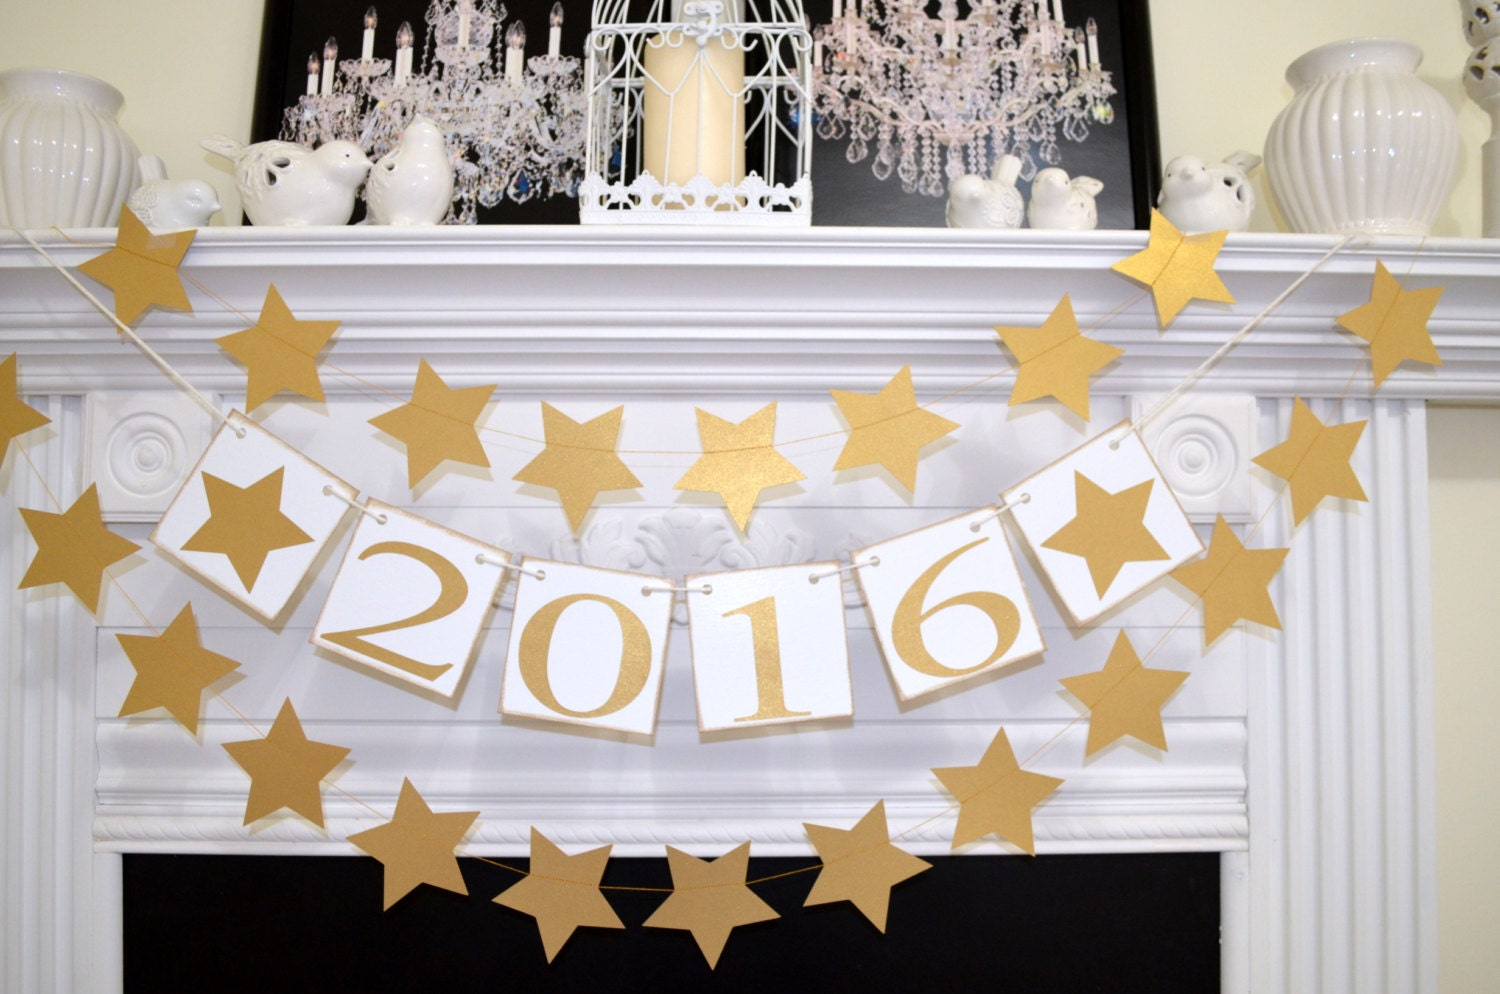 new years eve decorations new years eve party decorations. Black Bedroom Furniture Sets. Home Design Ideas